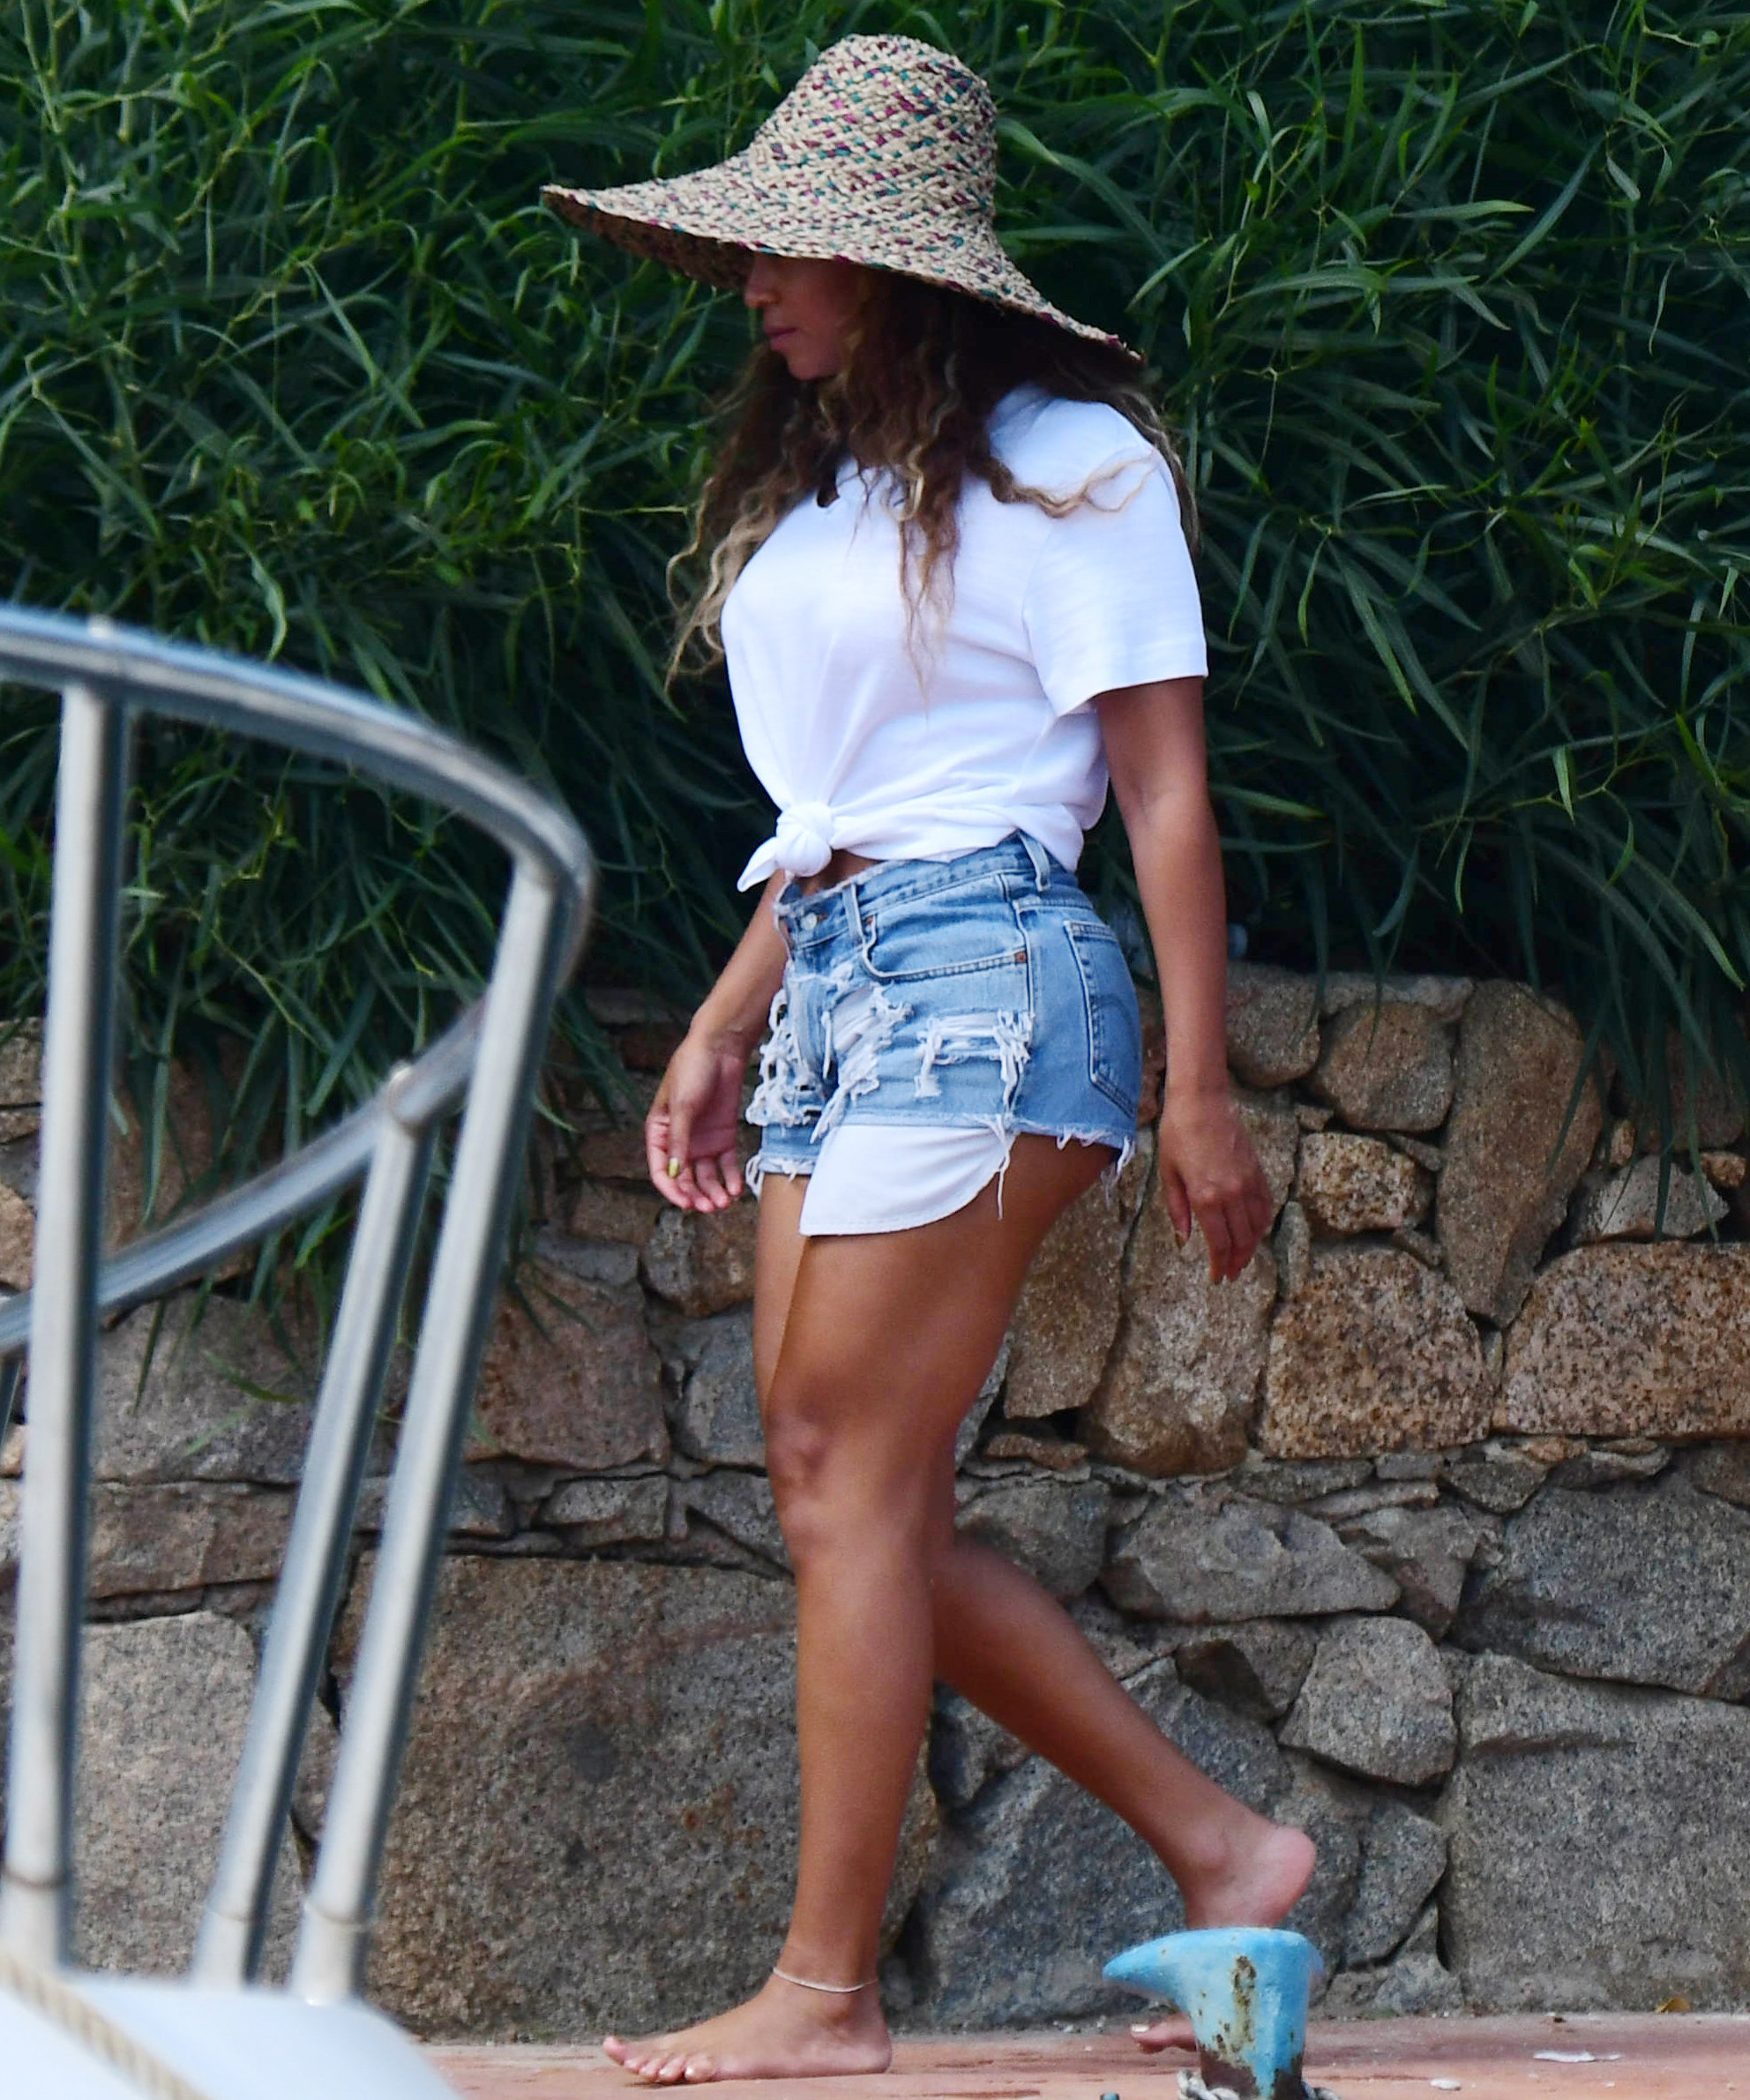 Beyoncé Shows Off Toned Legs in Denim Shorts While Out in Italy ...